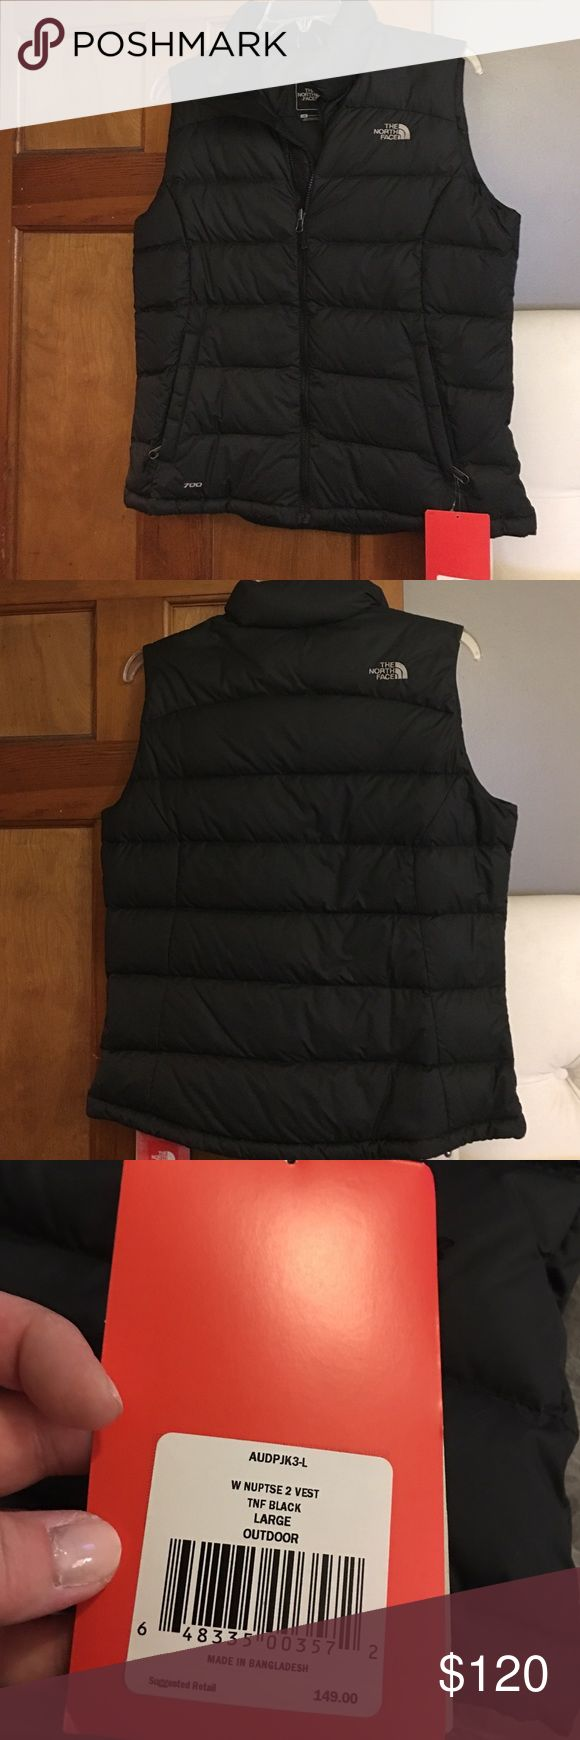 NWT The North Face Nuptse 2 Vest size large NWT The North Face Nuptse 2 Vest TNF black size large retails for $149 The North Face Jackets & Coats Vests